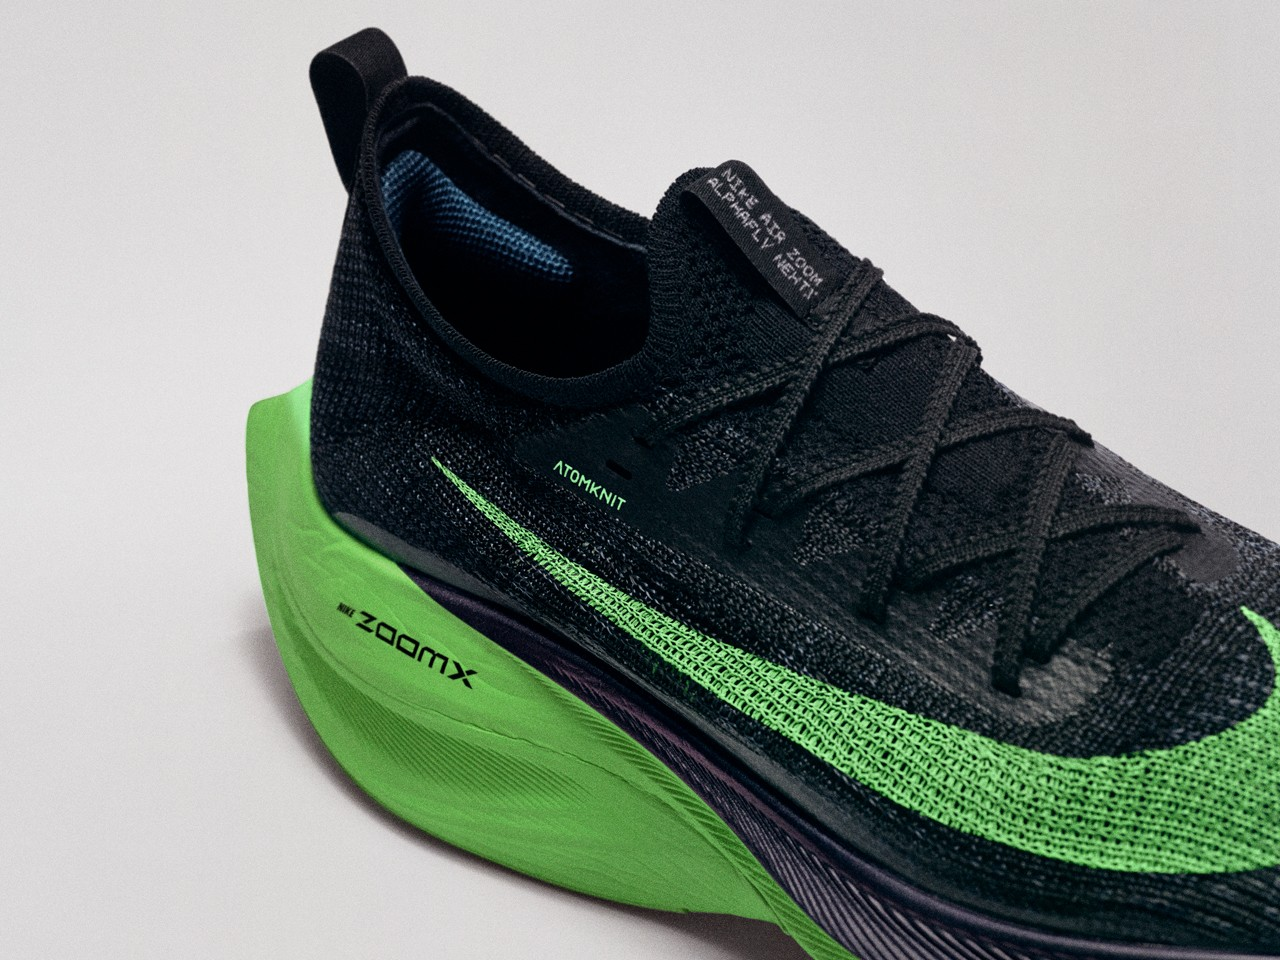 nike running 2020 olympic olympics tokyo footwear air zoom alpha fly tempo next percent track spikes victory viperfly alphafly flyknit banned shoes release date info photos price Atomknit track running sprinting marathon carbon fiber plates foam react